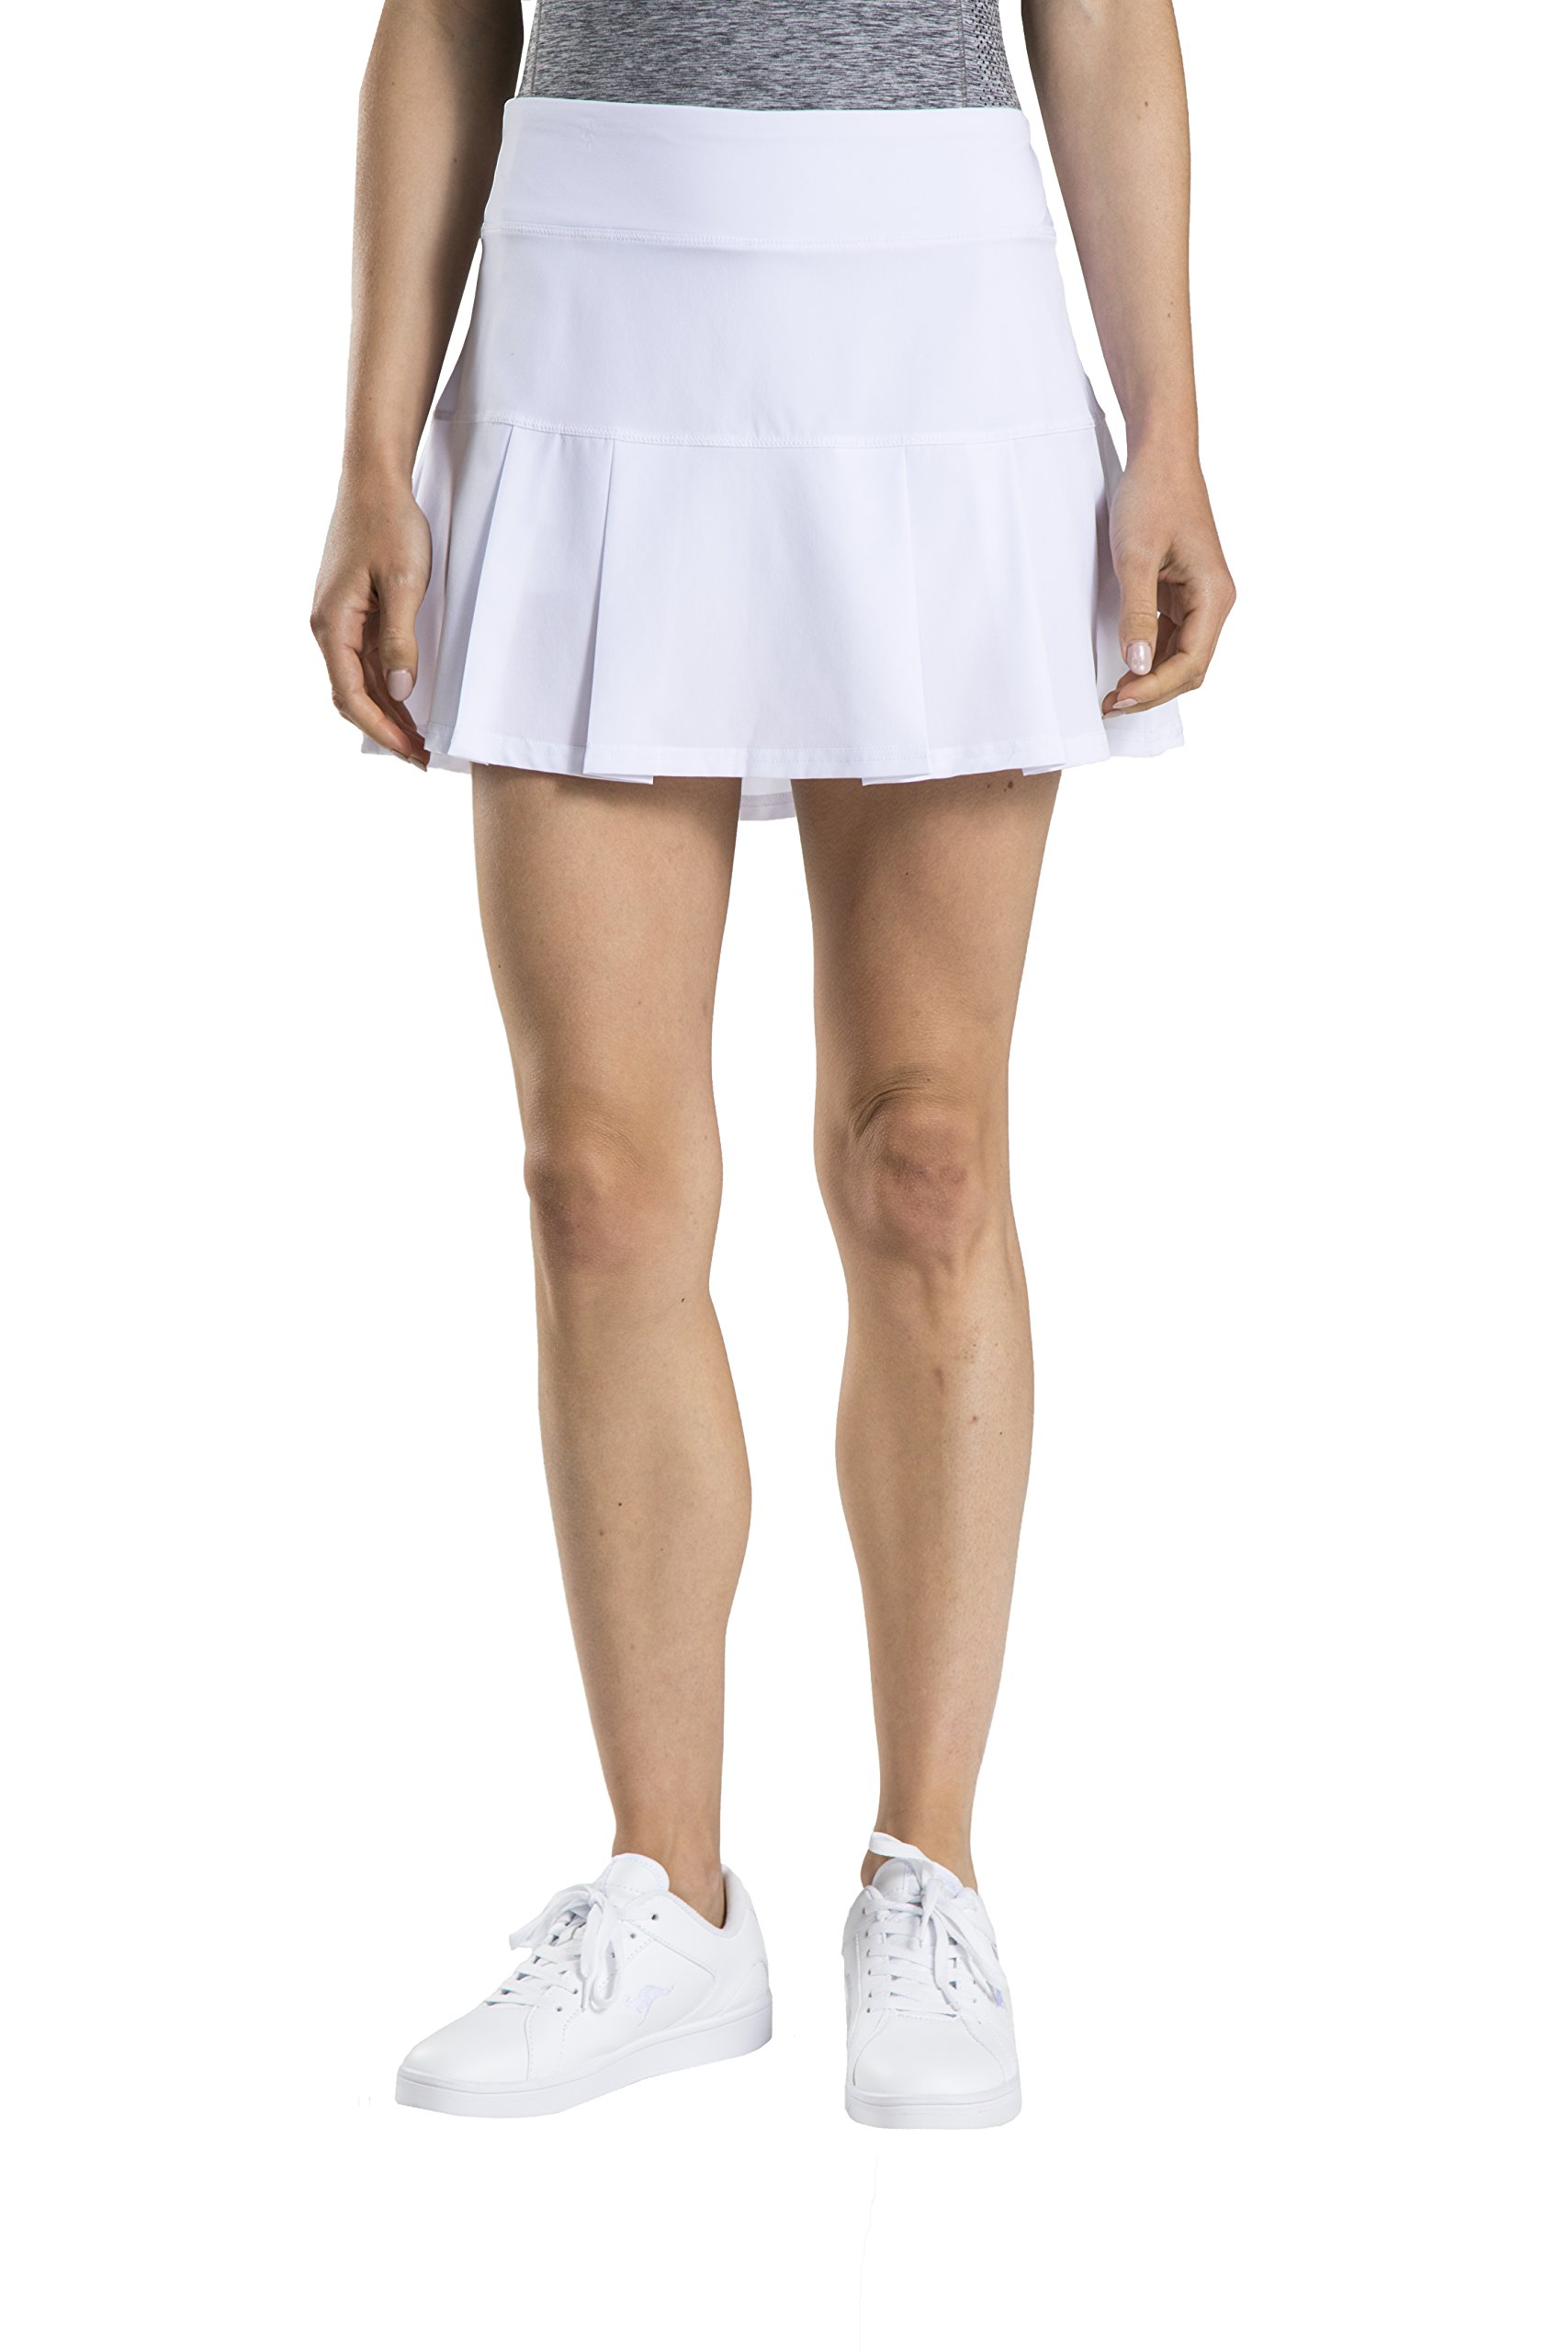 Prince Women's Stretch Woven Pleated Tennis Skort, White, Small by Prince (Image #1)